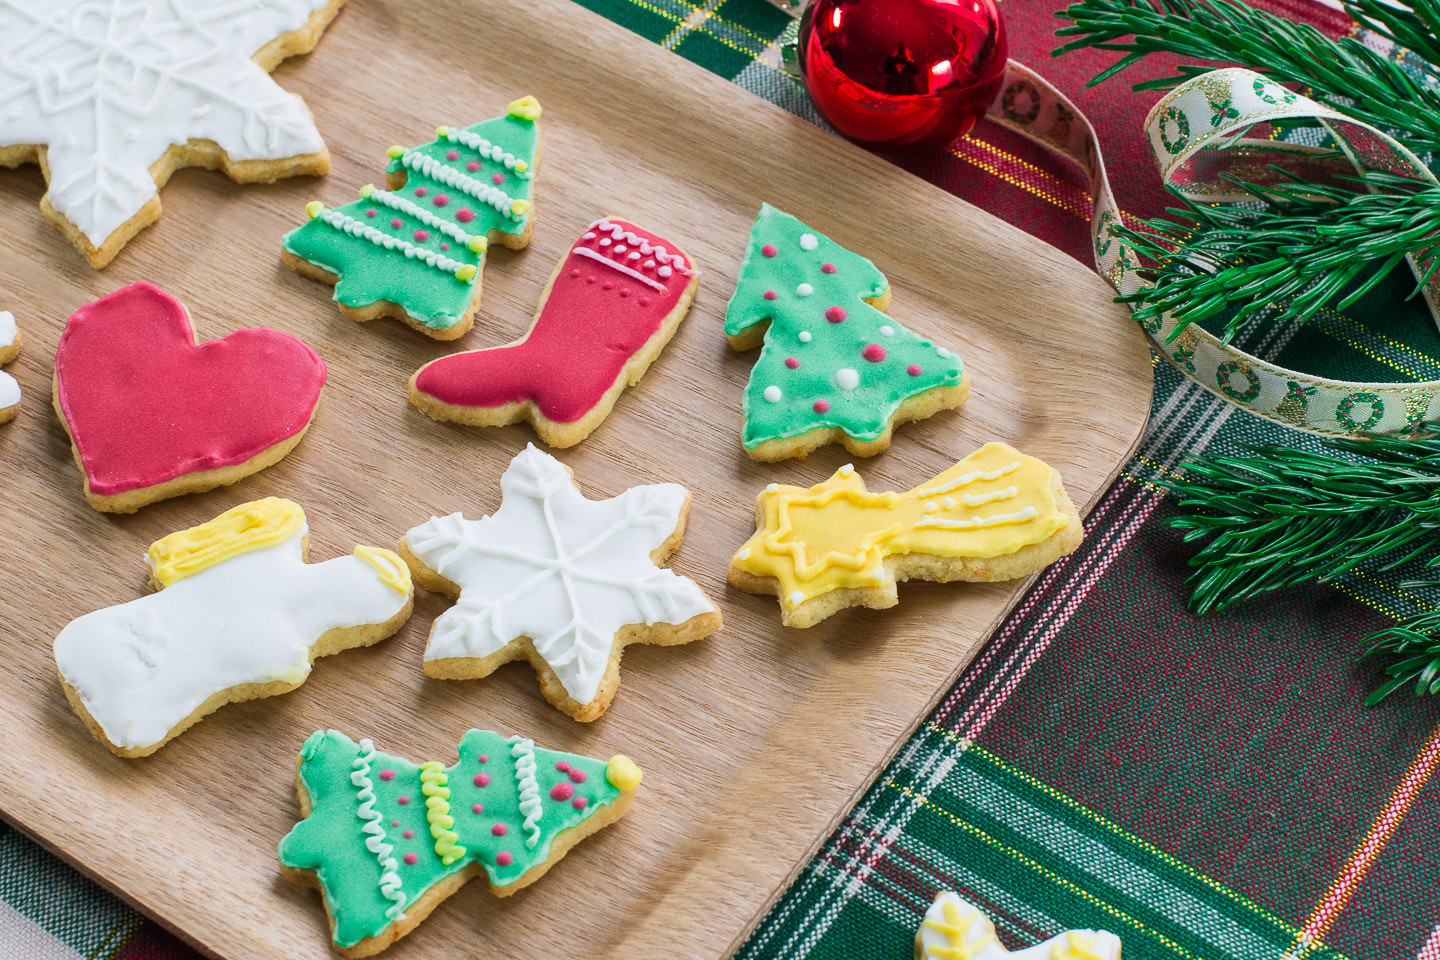 Blog-mode-and-the-city-food-sablés-de-noël-christmas-cookies